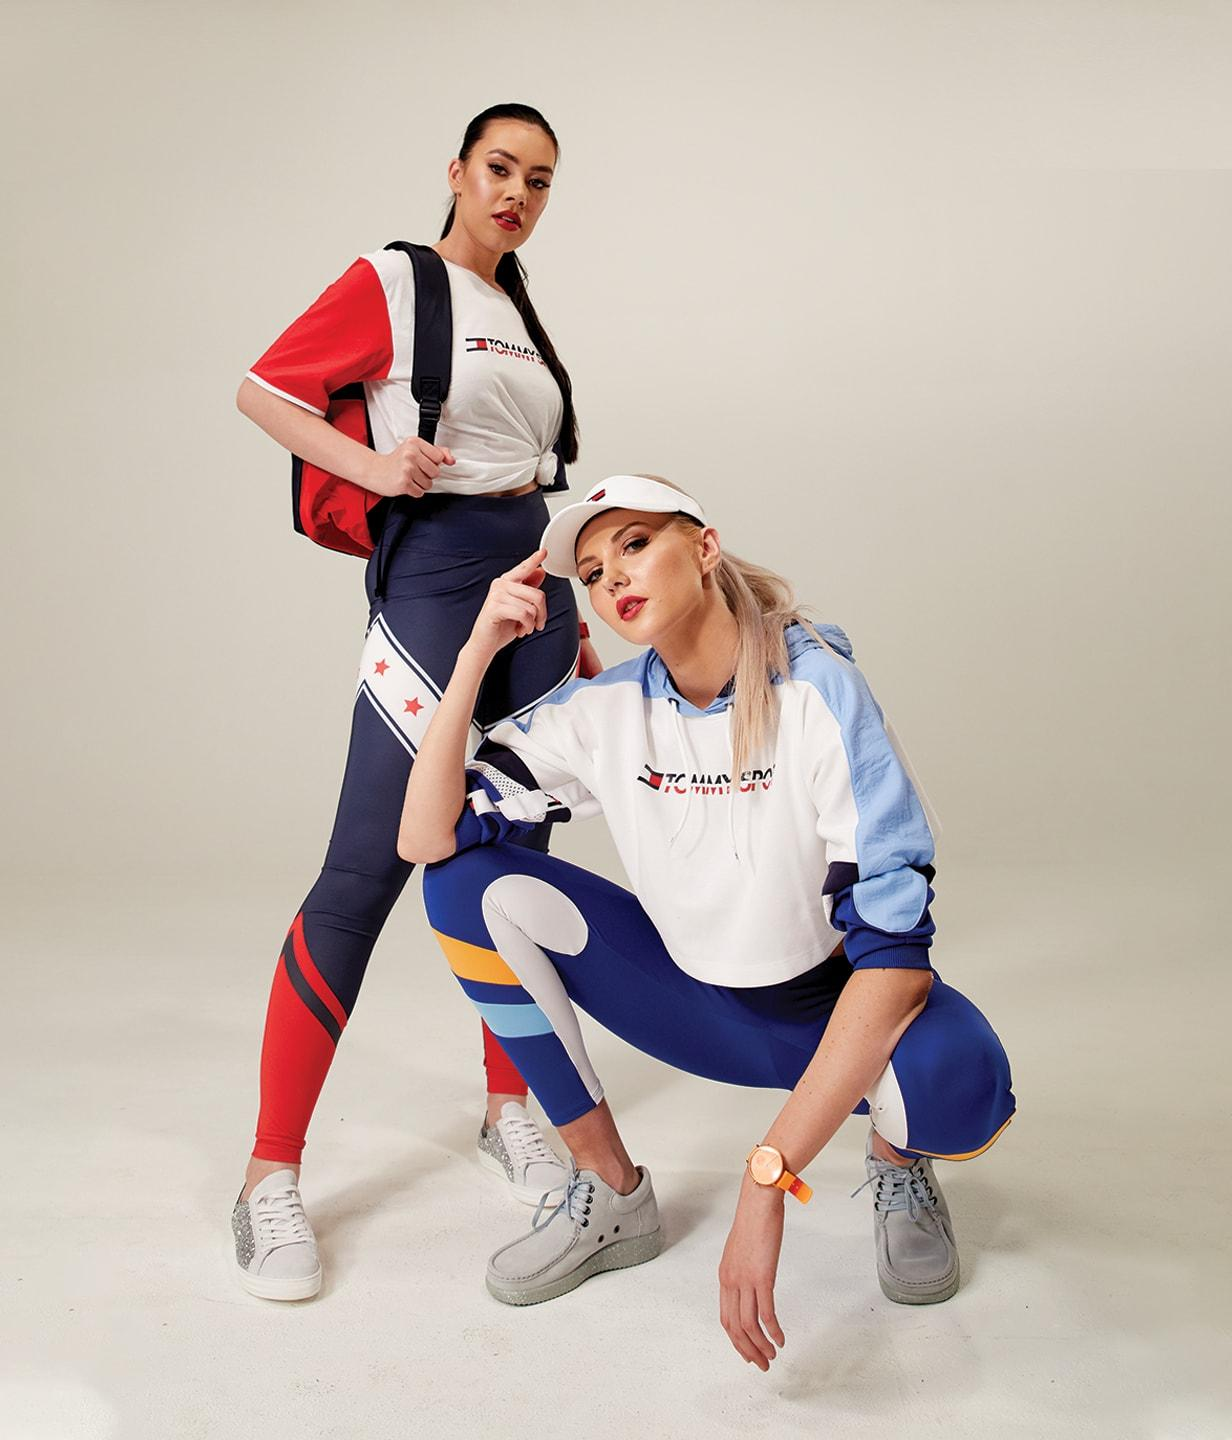 Two women in activewear